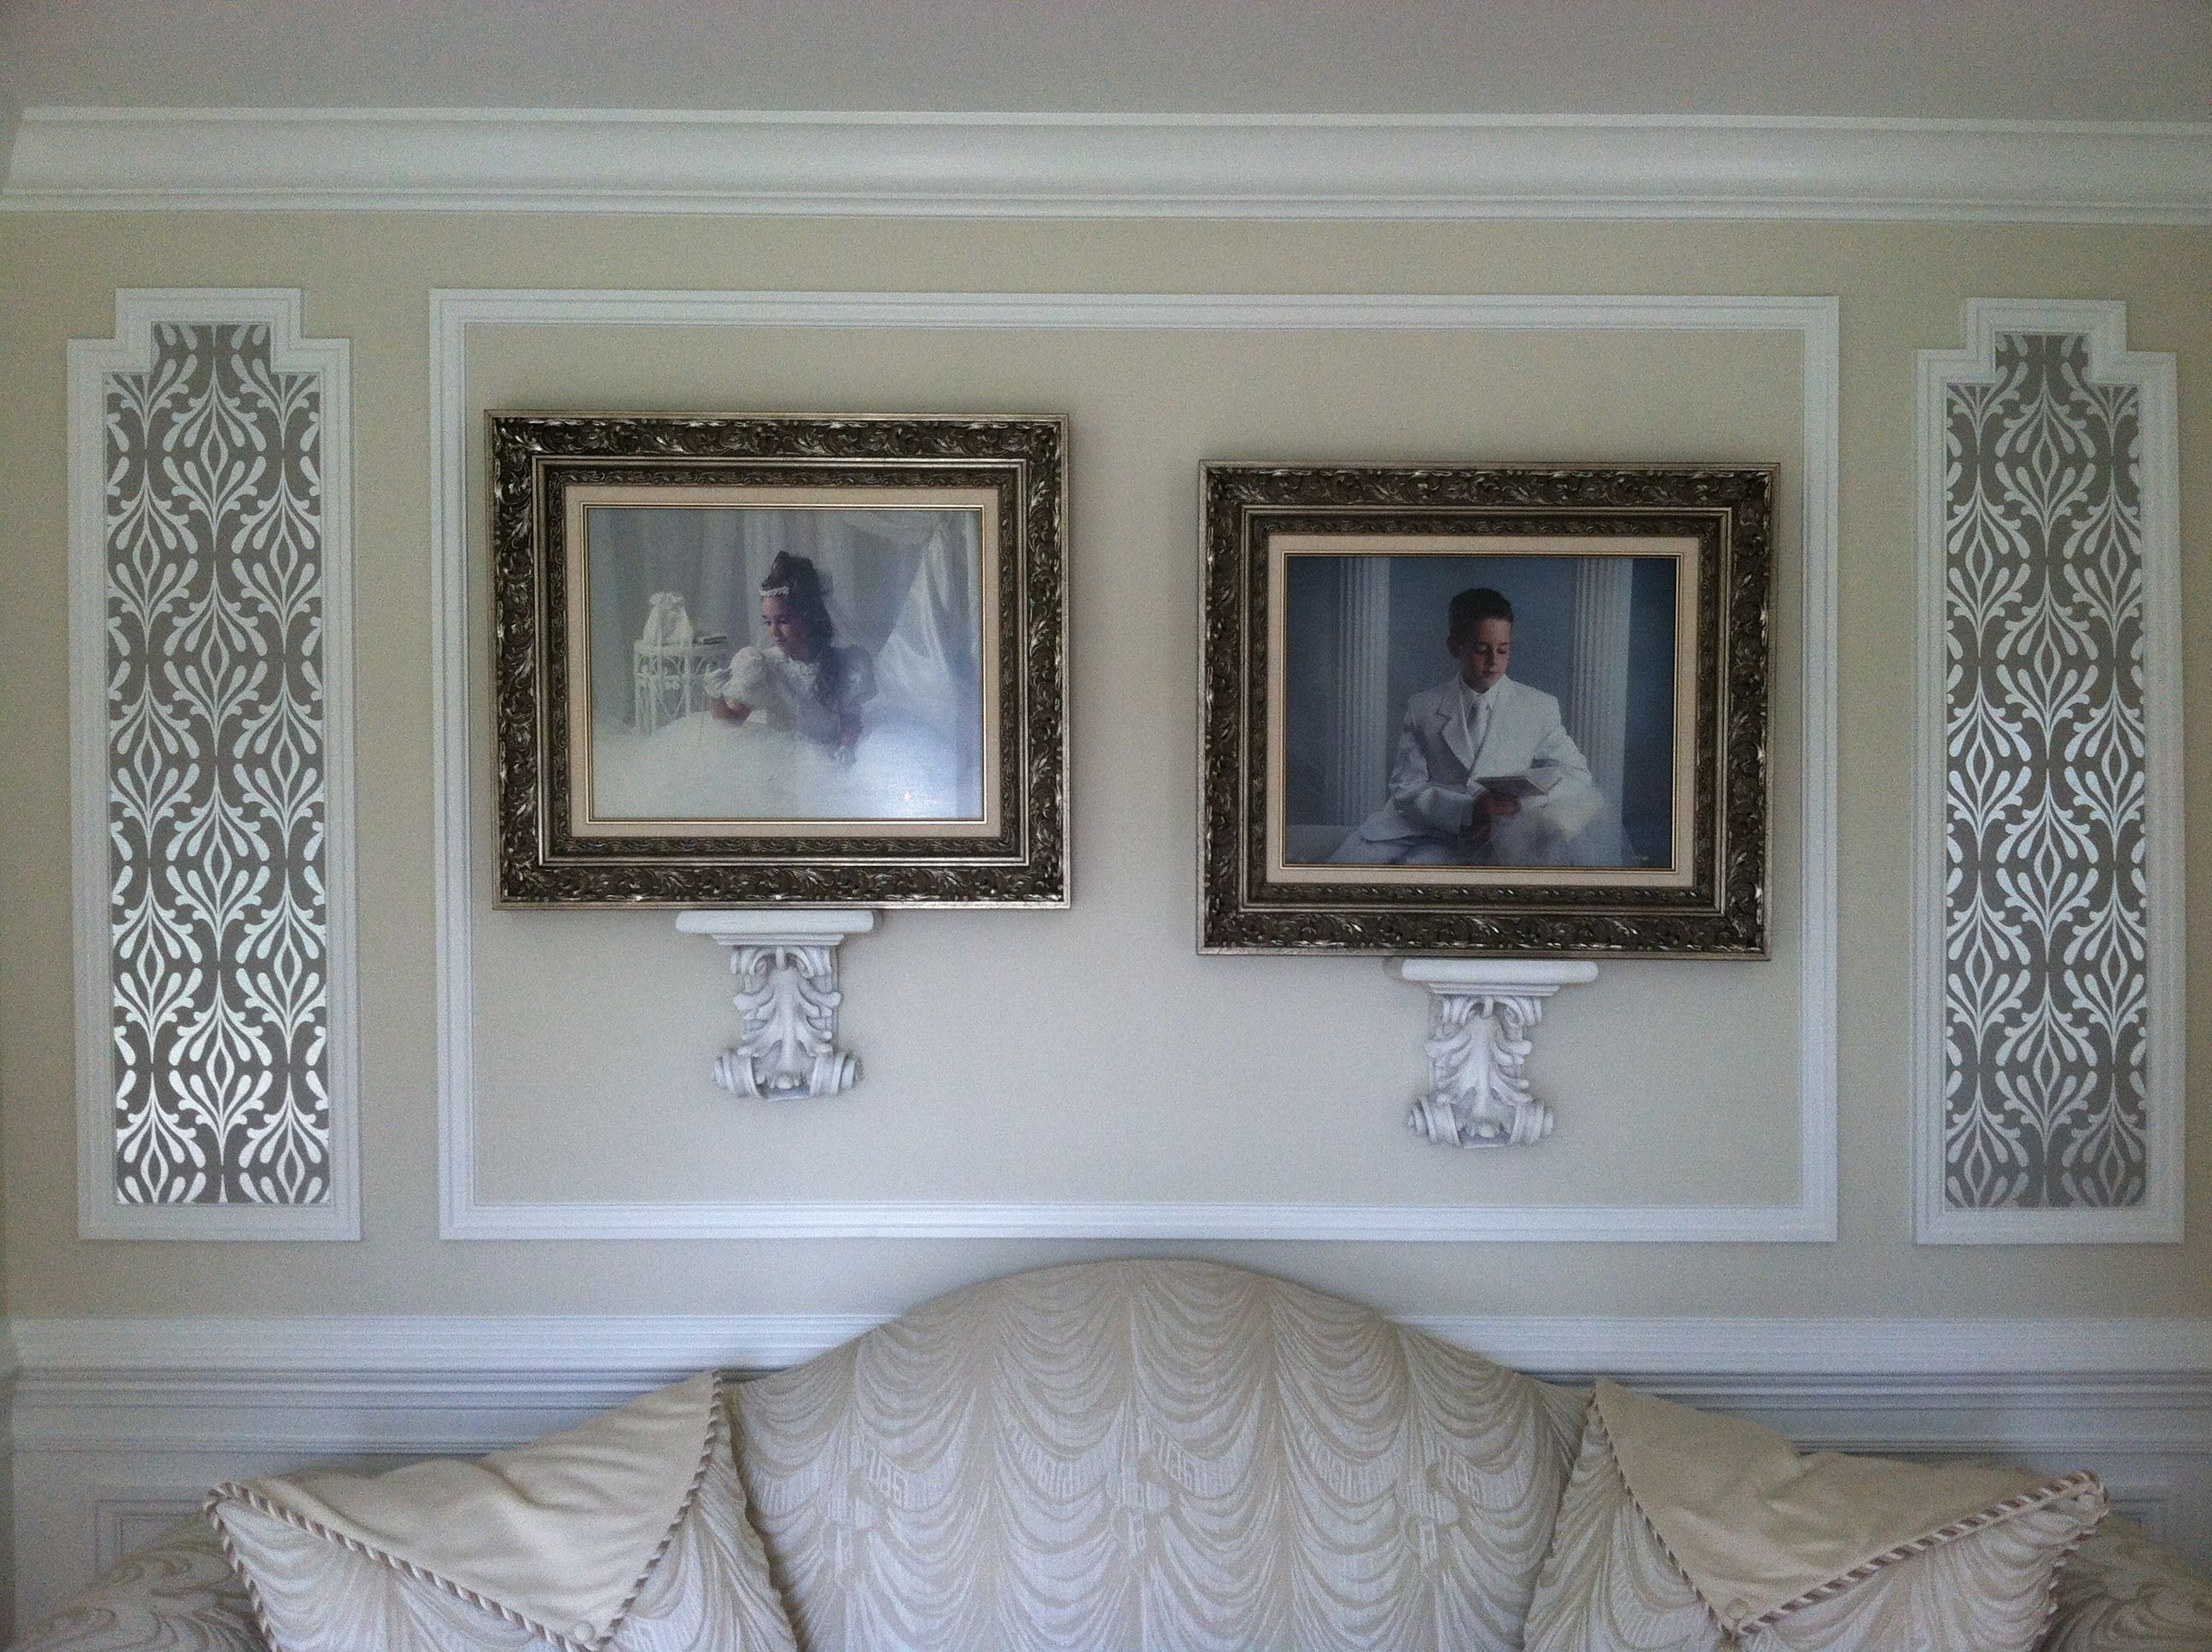 Photographs hung within molding. Use of wallpaper framed by molding ...